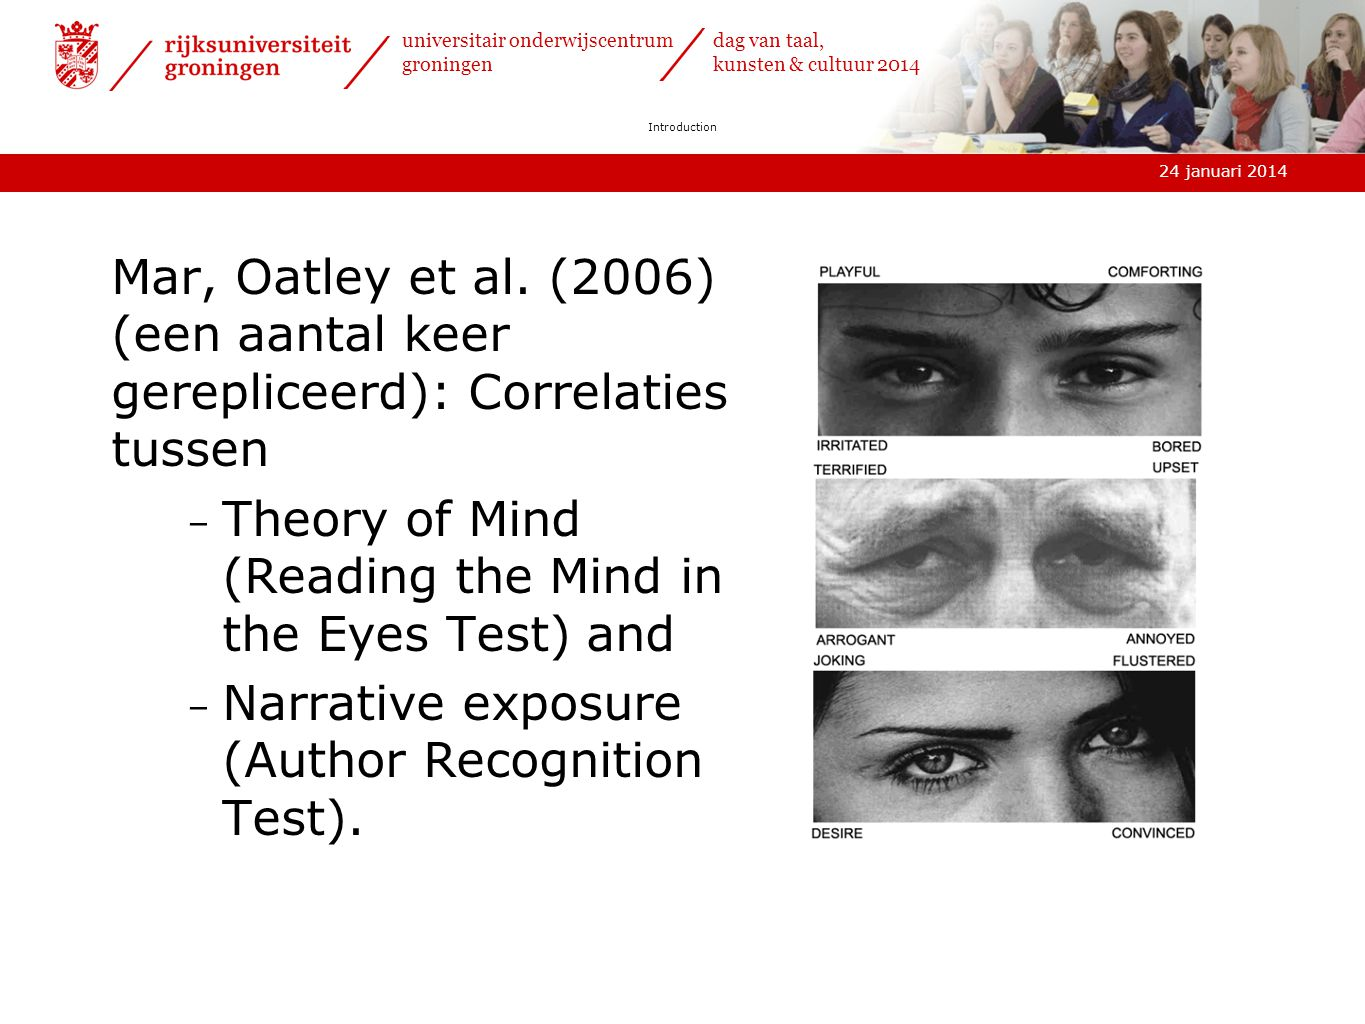 Theory of Mind (Reading the Mind in the Eyes Test) and